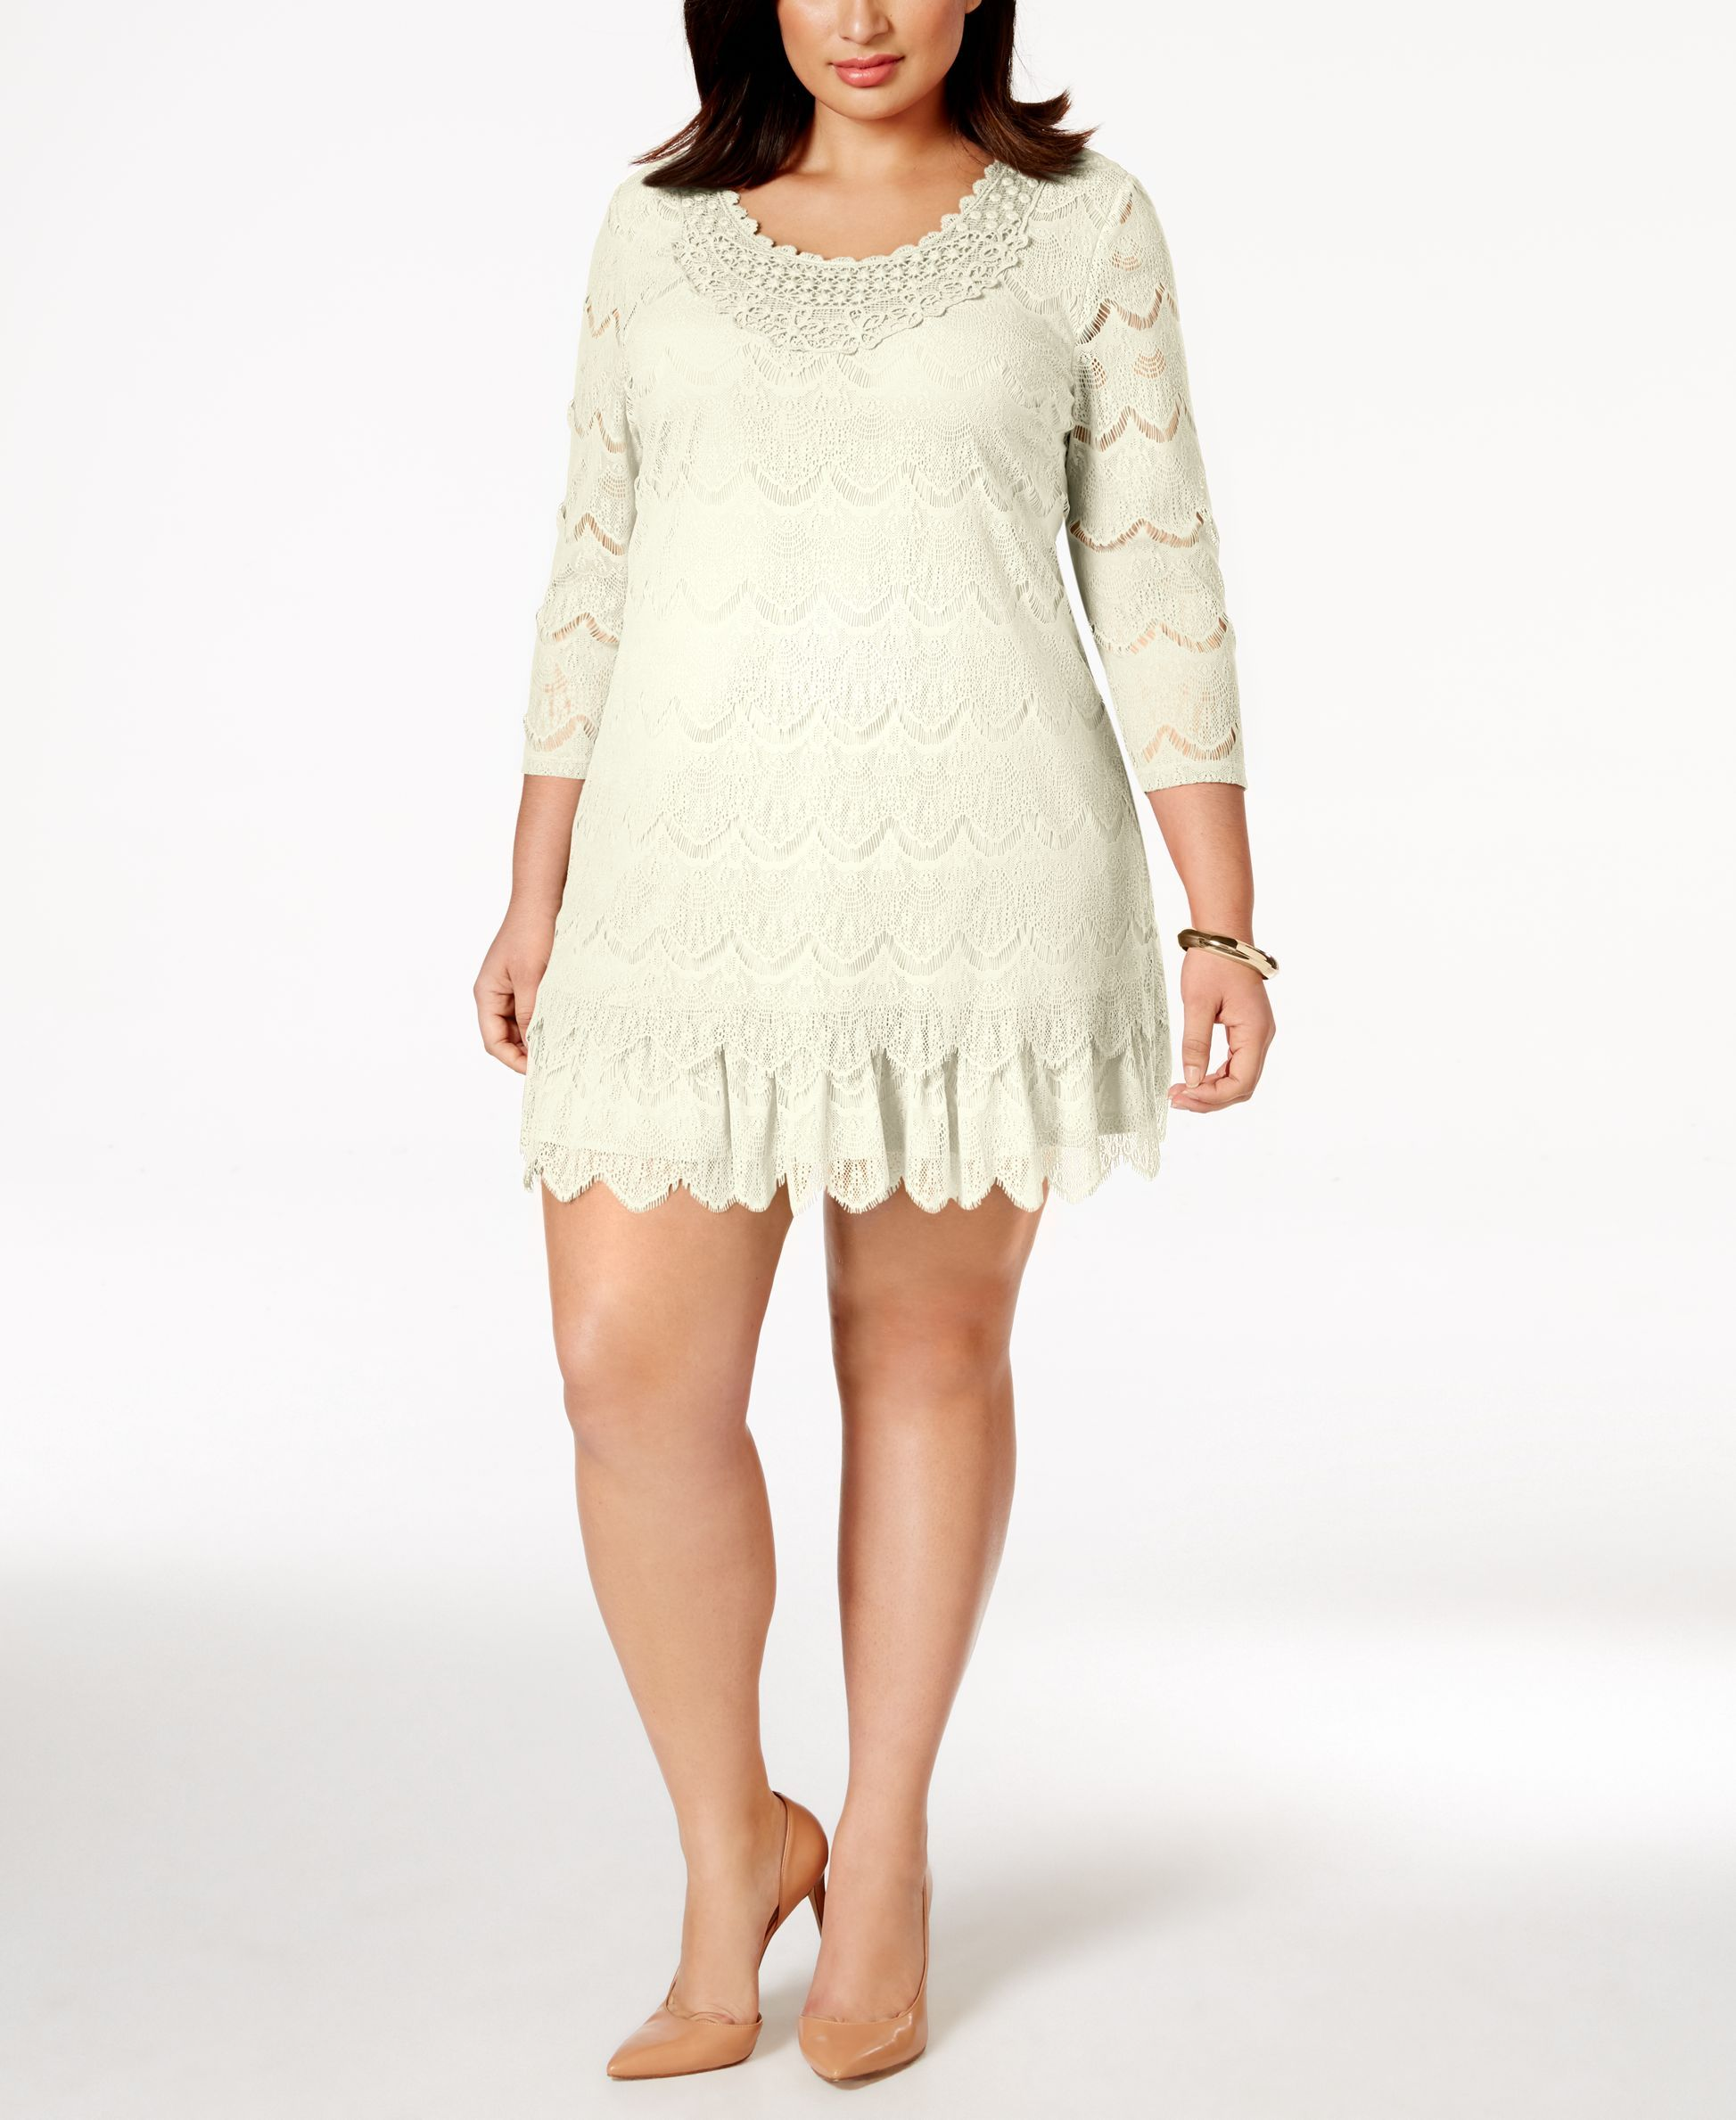 Style Co Plus Size Three Quarter Sleeve Crochet Lace Dress Only